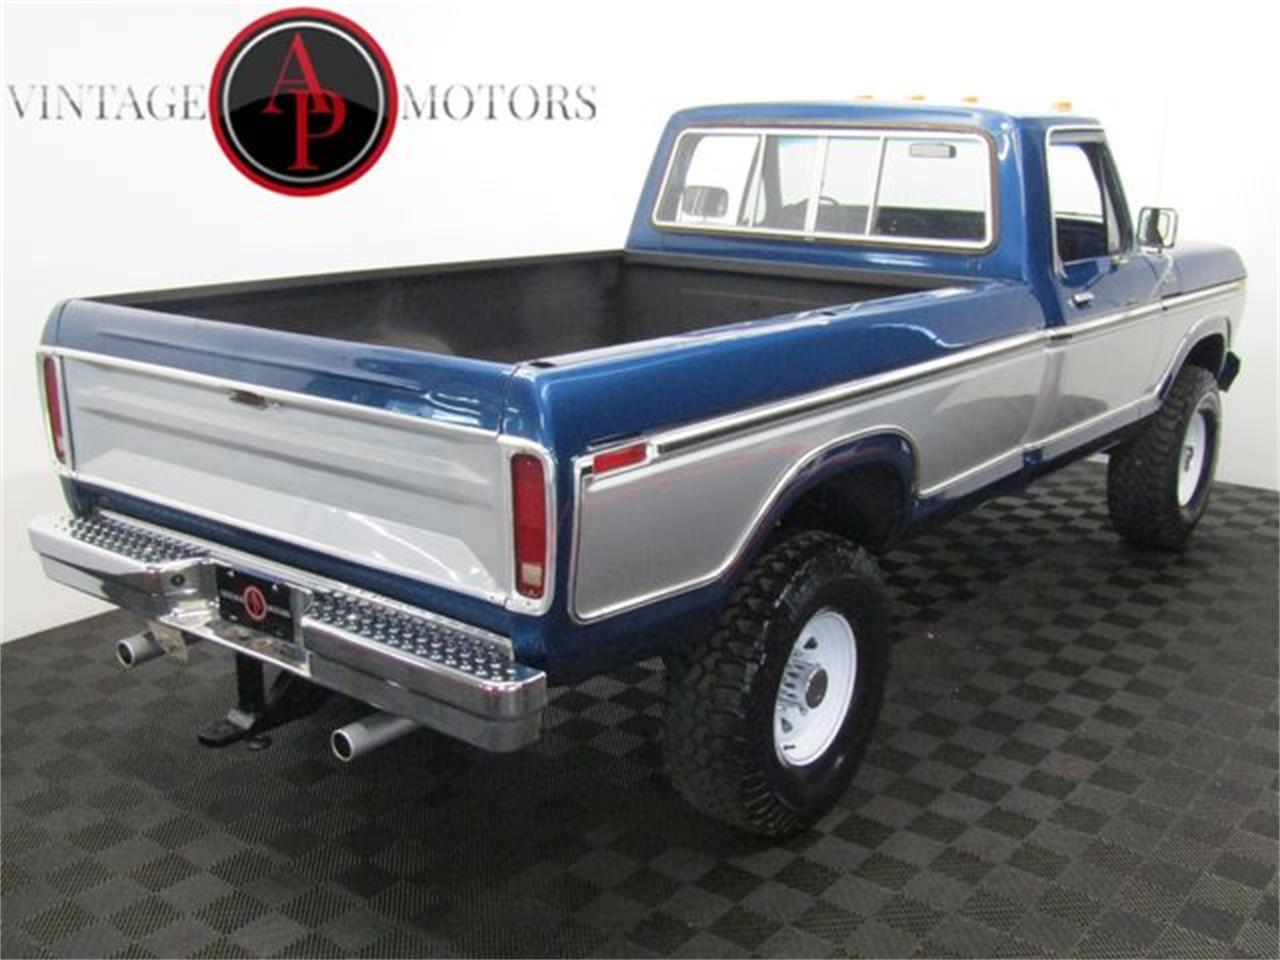 1979 Ford F250 for sale in Statesville, NC – photo 77